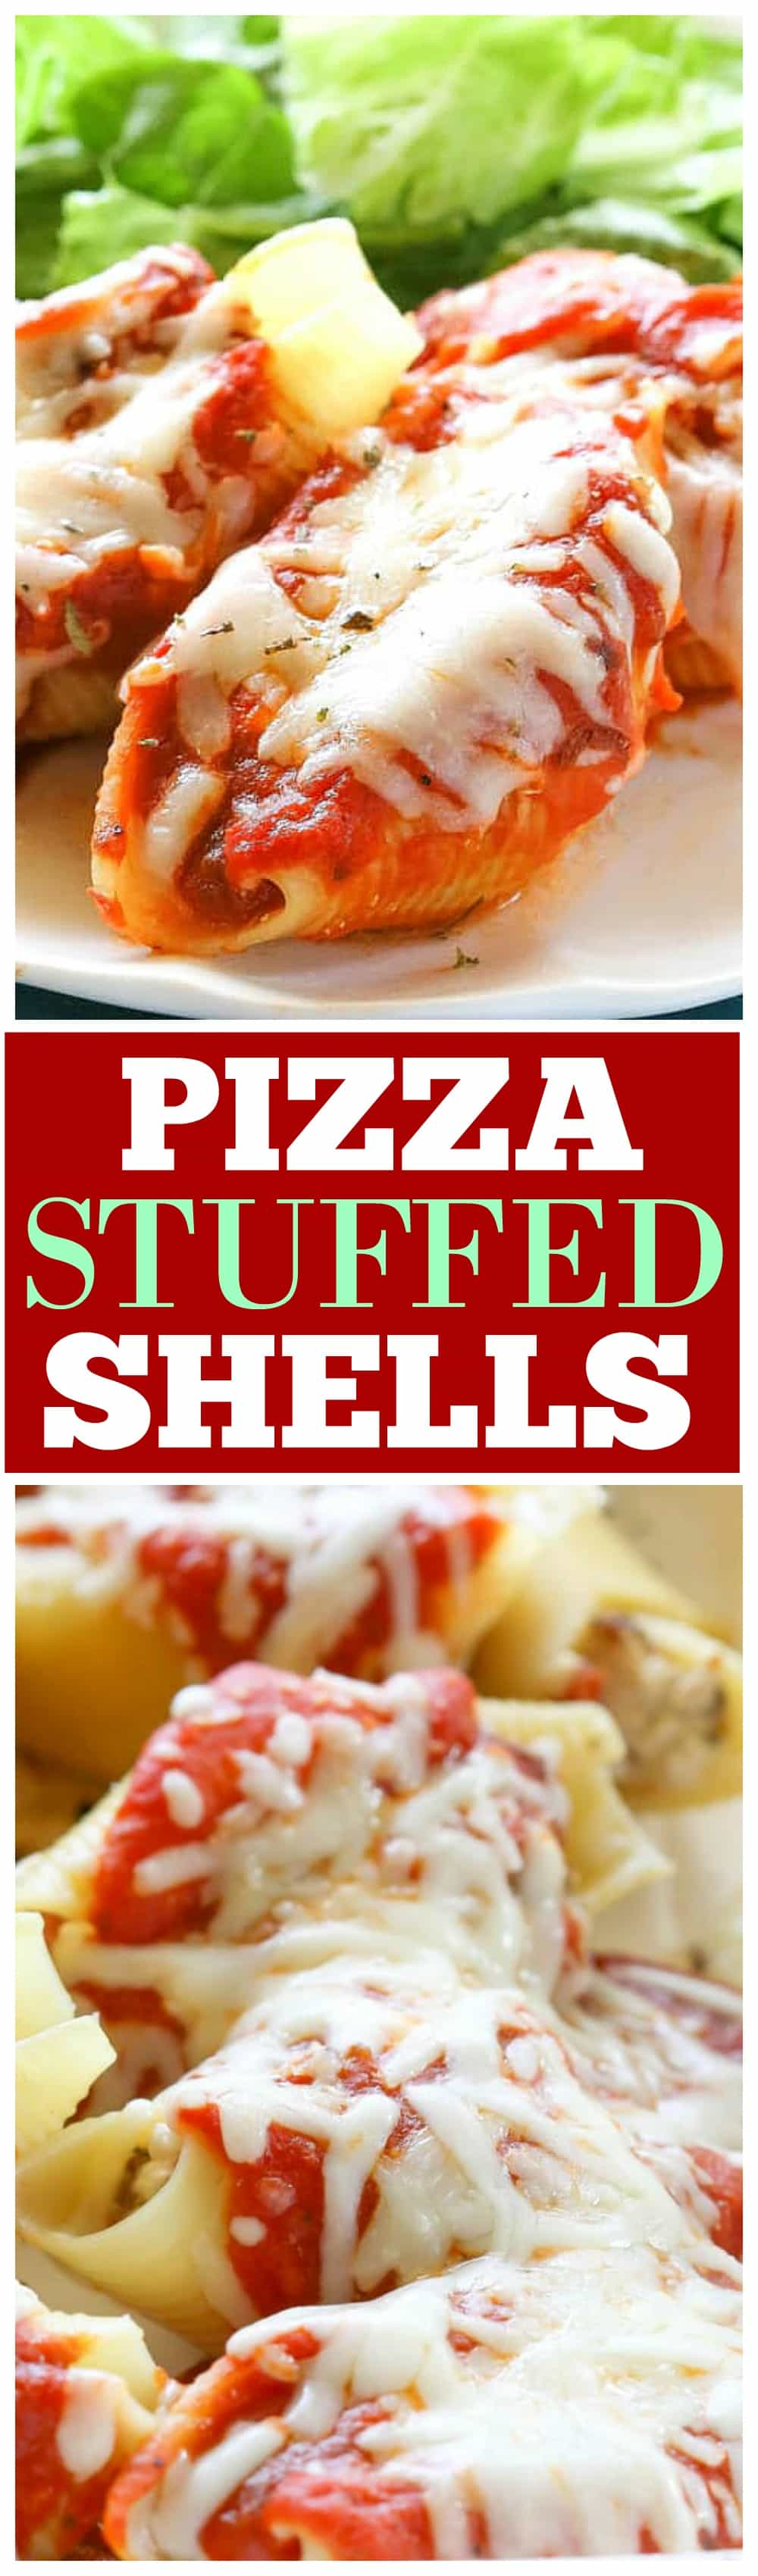 These Pizza Stuffed Shells are jumbo pasta shells stuffed with sausage, pepperoni, and cheese. Put your favorite toppings in! They can be made ahead and frozen for later. These are a total crowd pleaser.